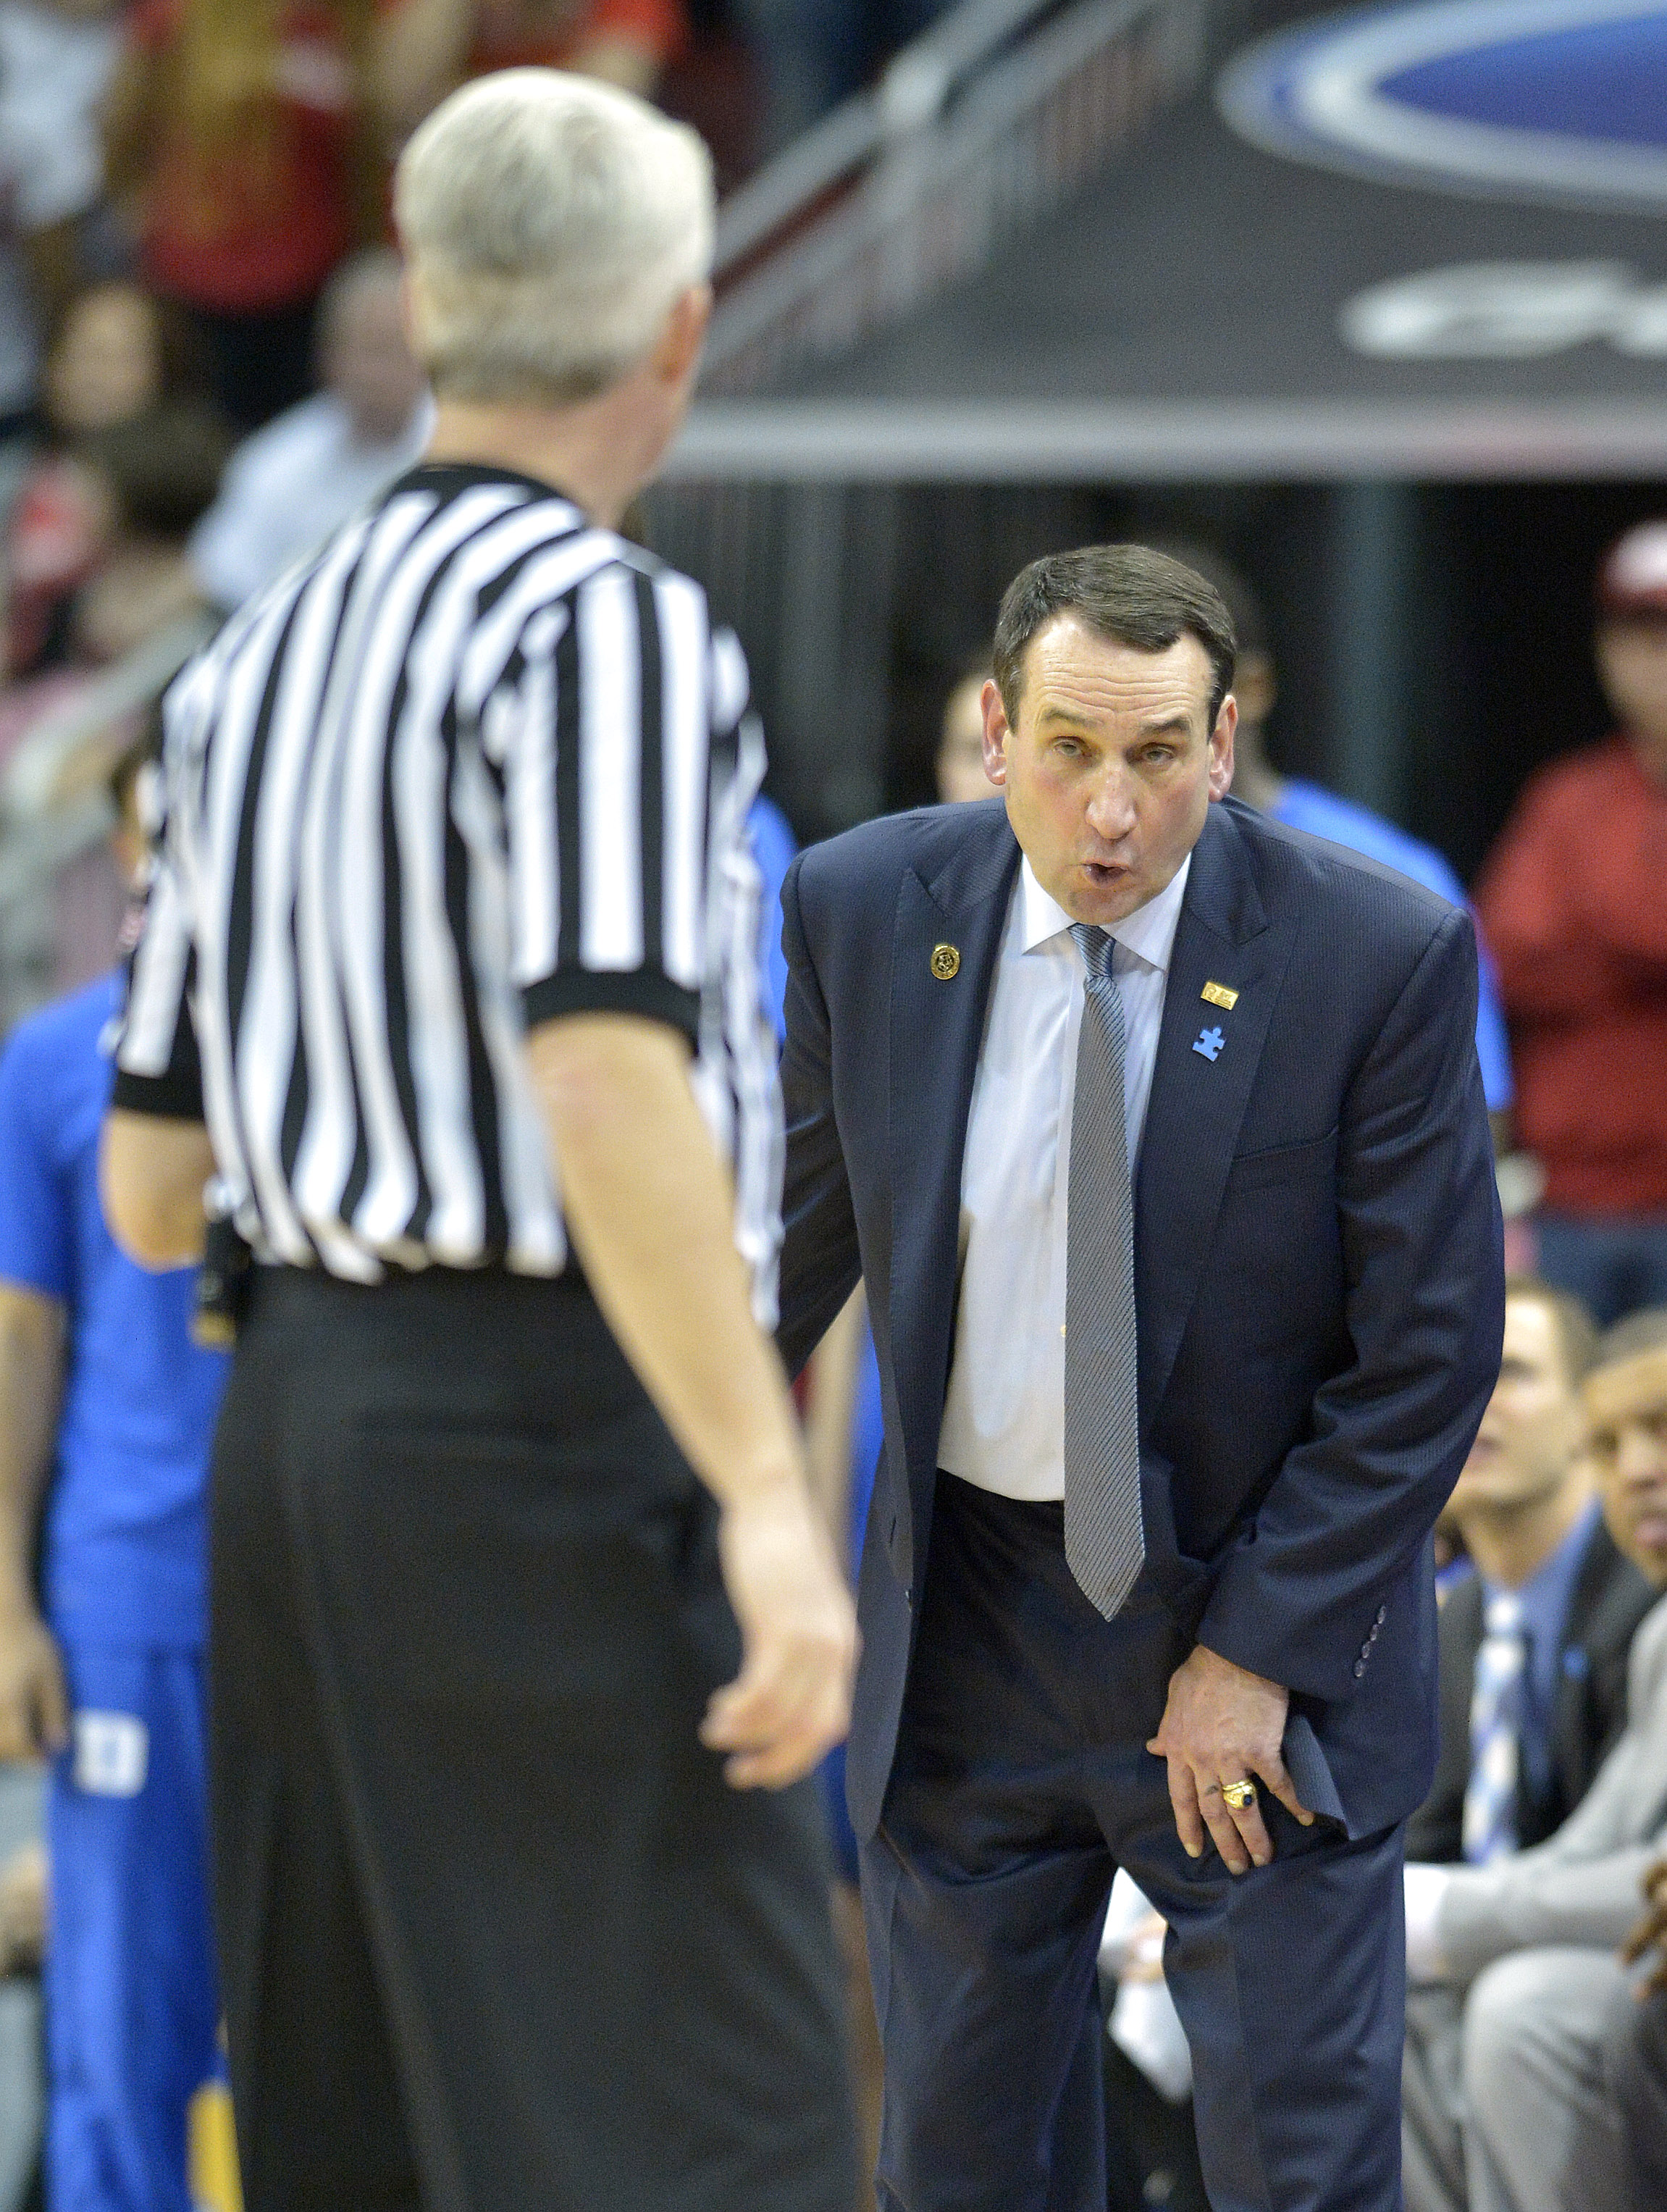 Duke head coach Mike Krzyzewski argues with game official Brian O'Connell during the second half of an NCAA college basketball game against Louisville, Saturday, Feb. 20, 2016 in Louisville Ky. Louisville won 71-64. (AP Photo/Timothy D. Easley)